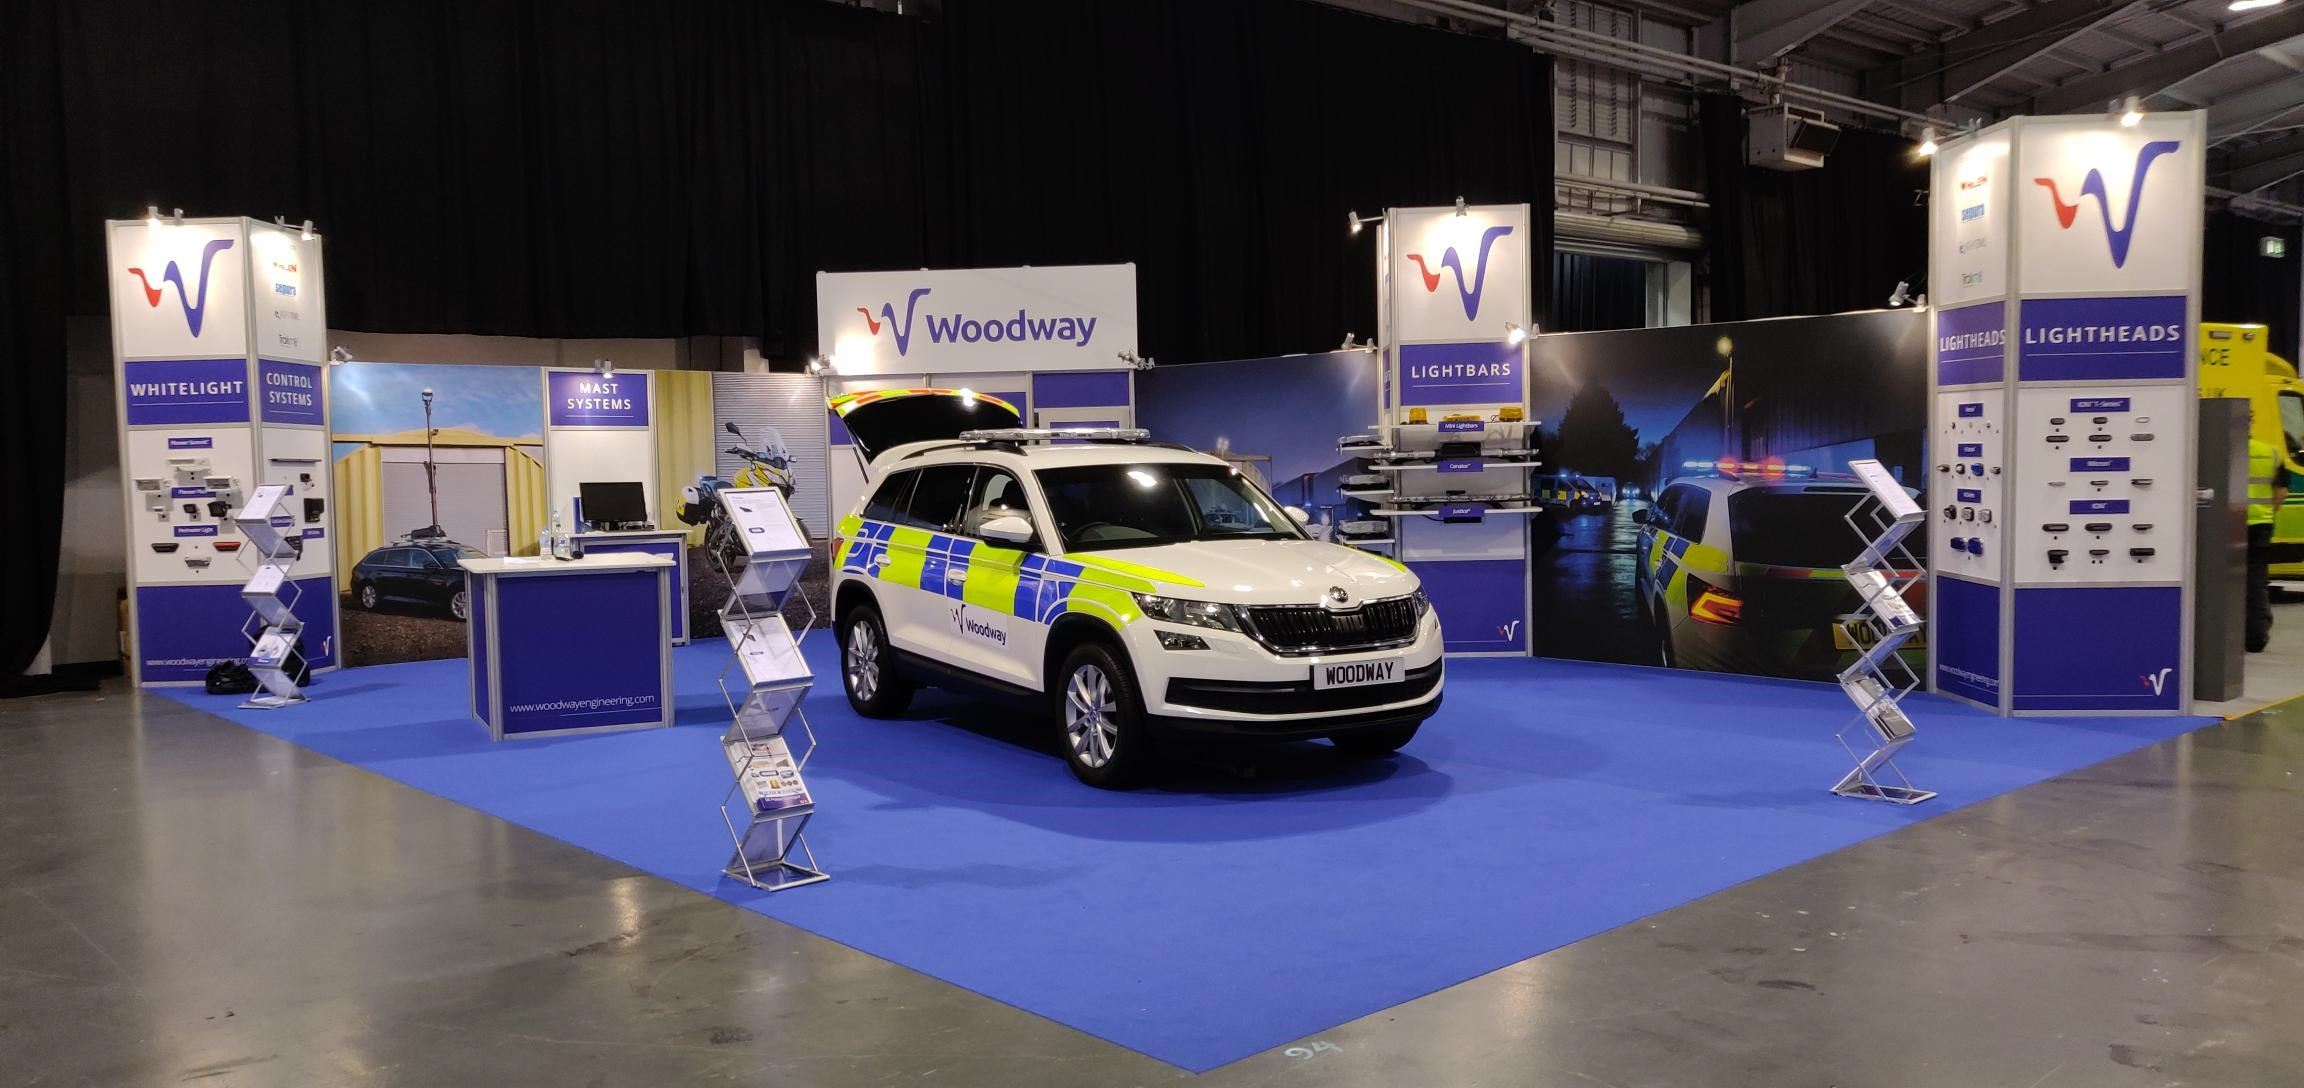 Woodway Exhibition Stand